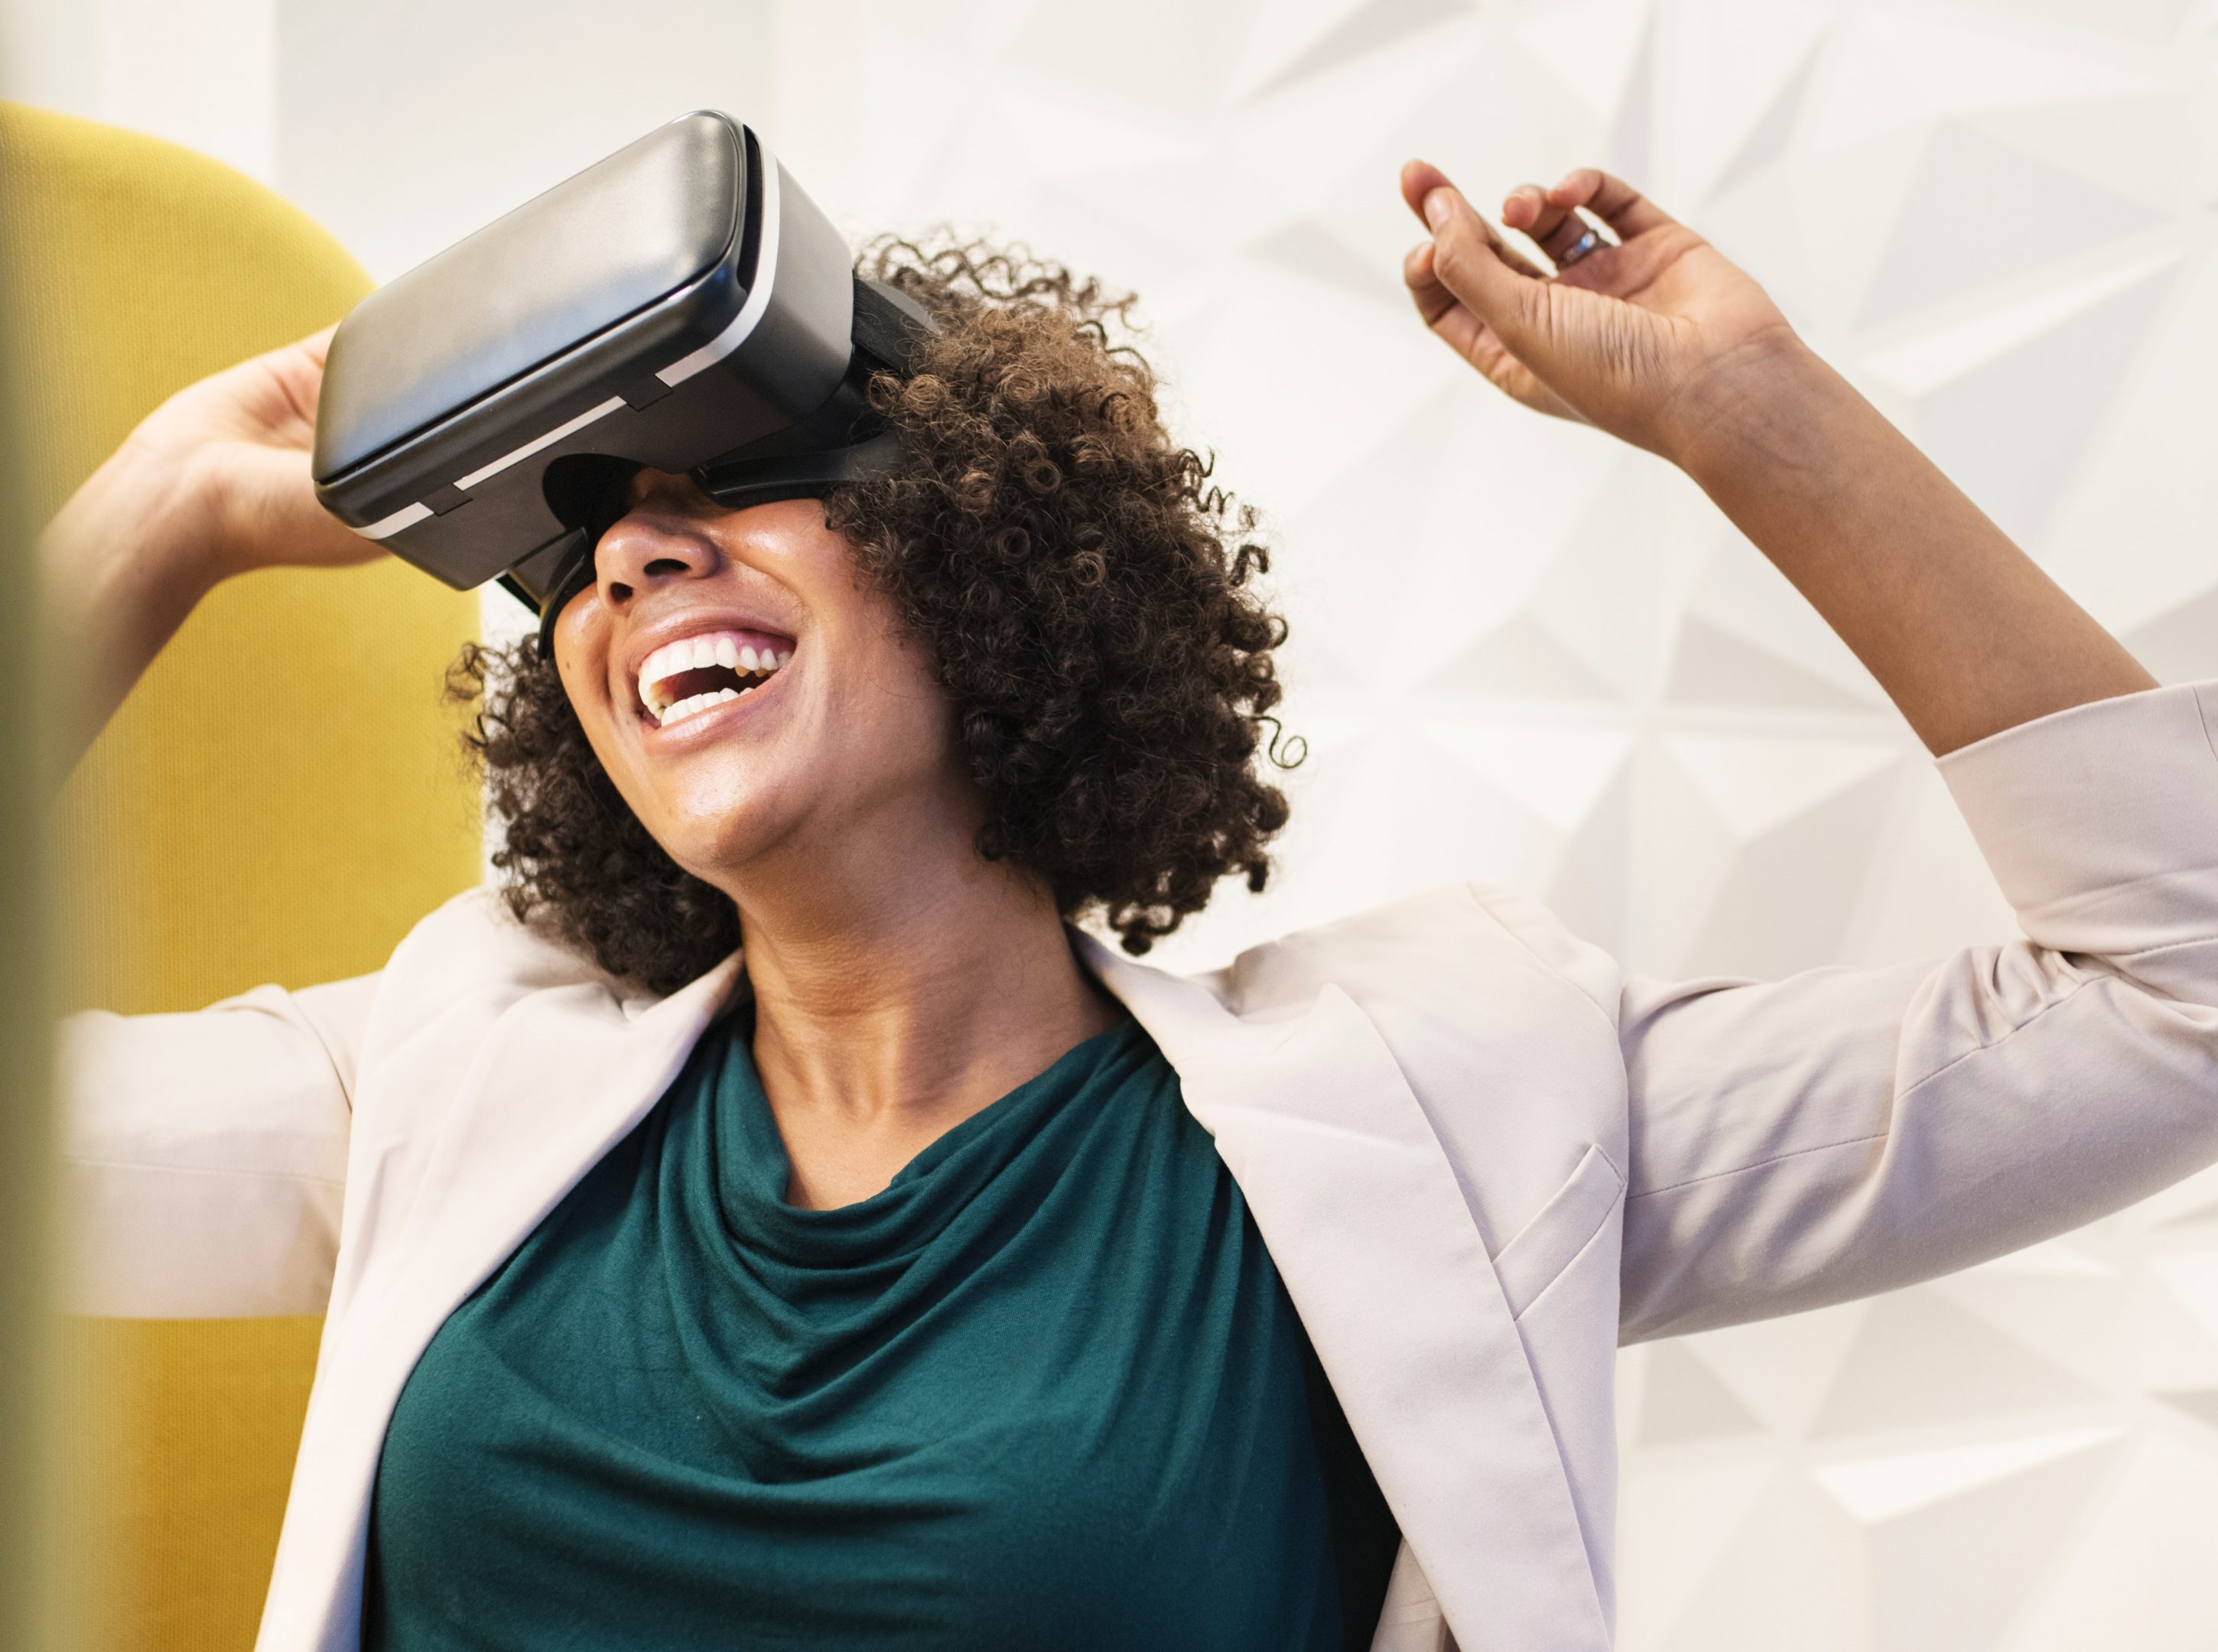 Future Gaming Technology Predictions for 2020